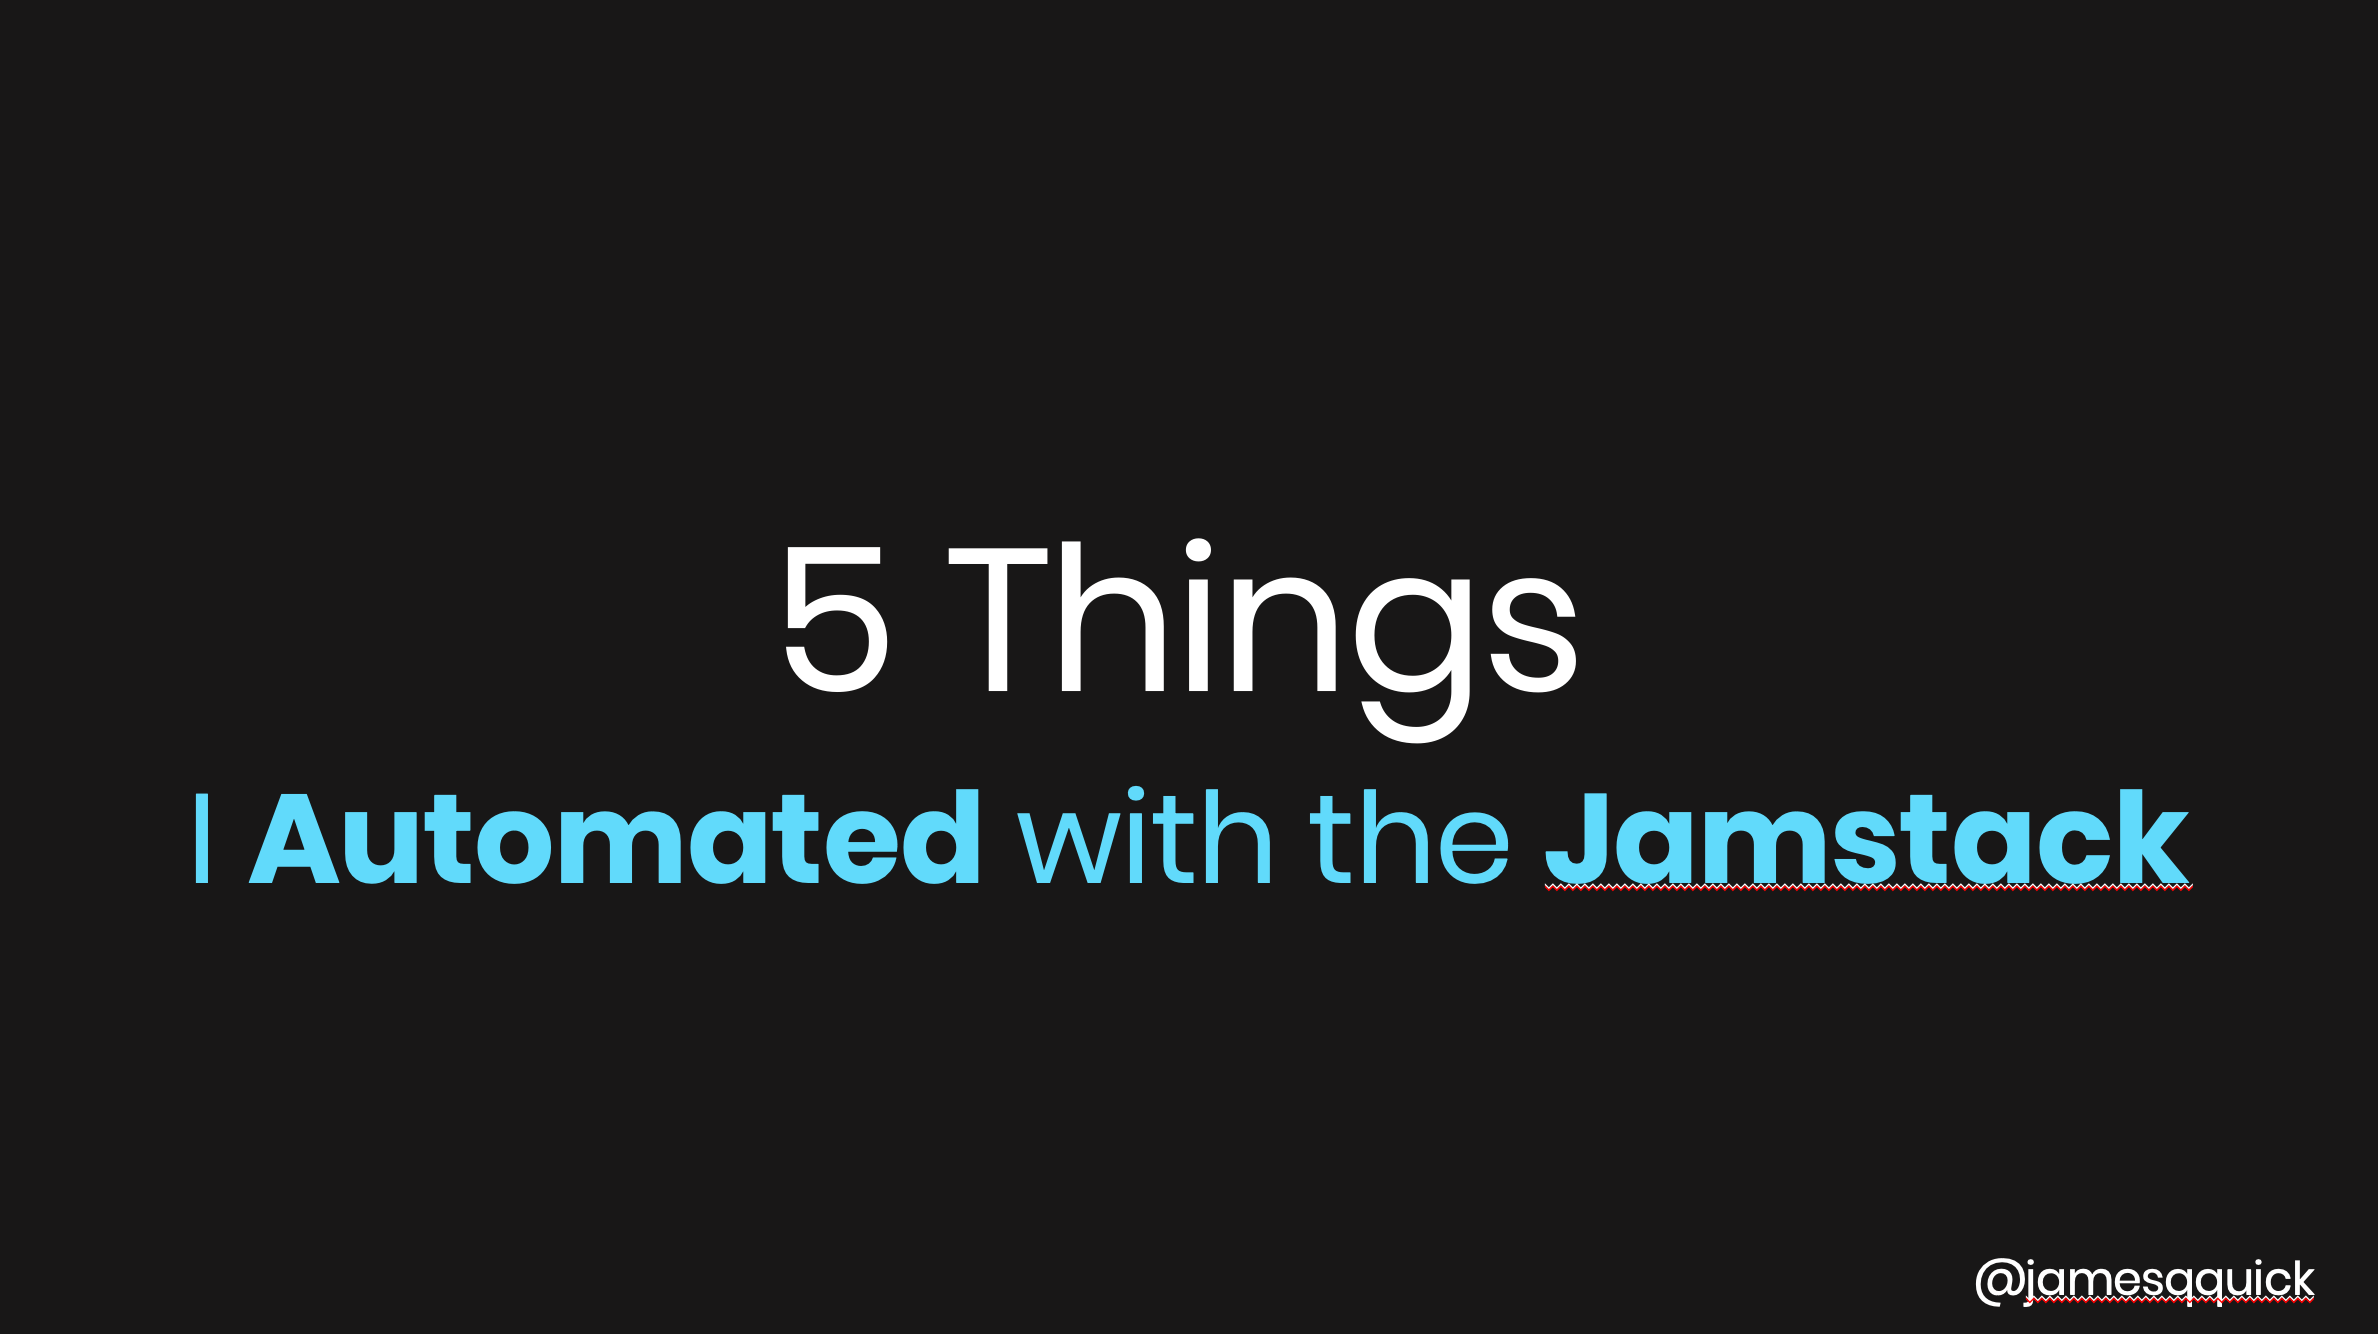 5 Things I've Automated with the Jamstack